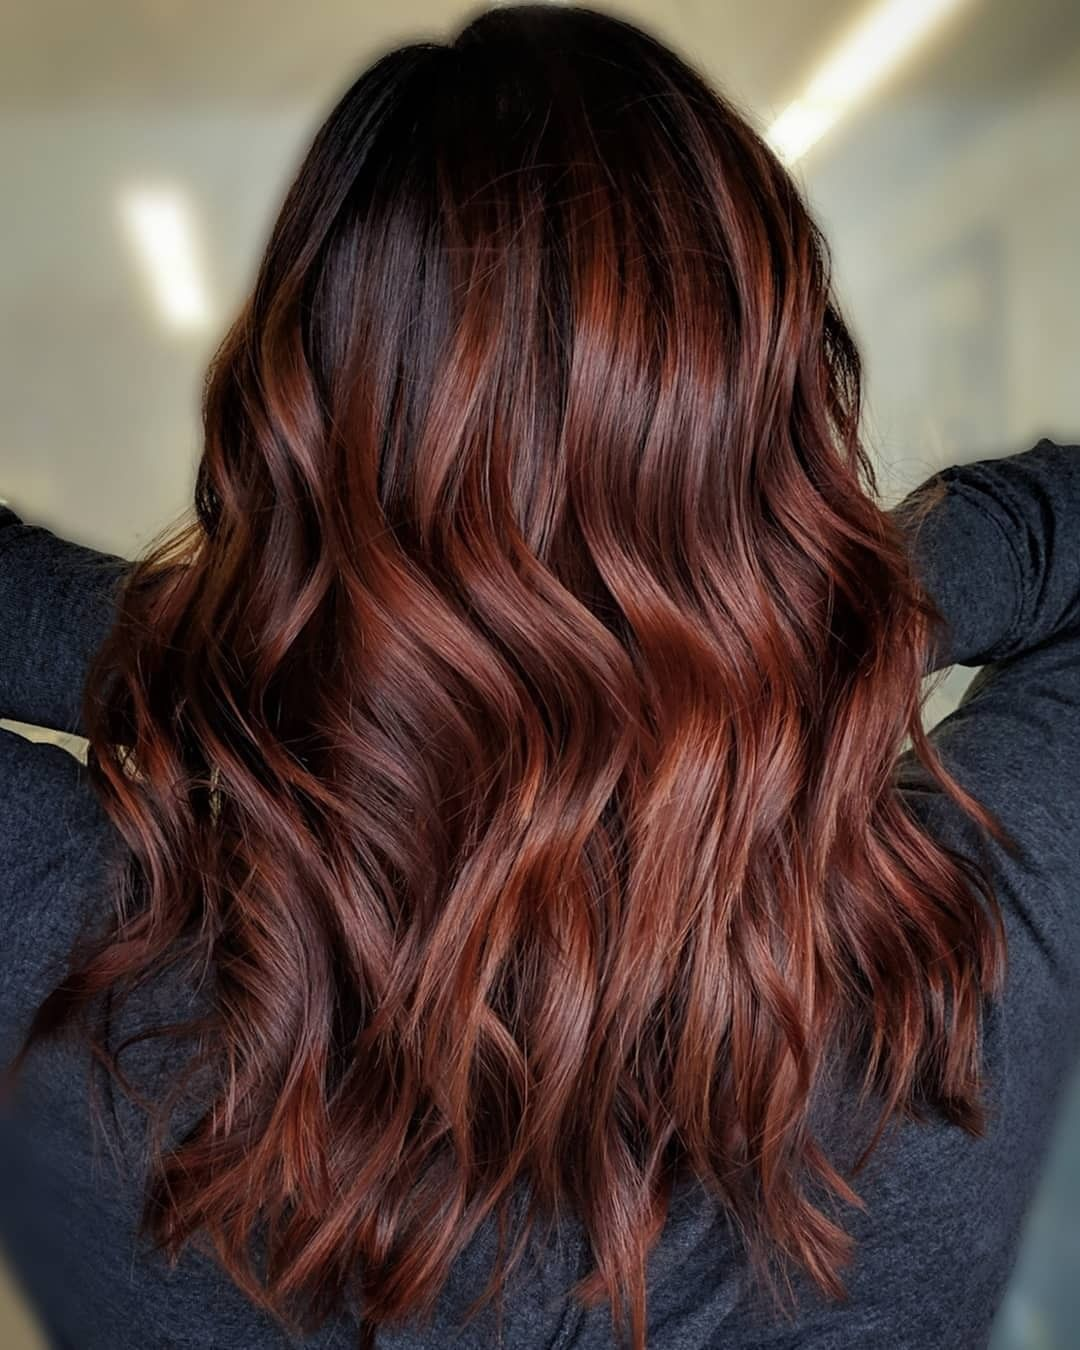 20 Cute Easy Hairstyles For Summer 2021 Hottest Summer Hair Color Ideas Hairstyles Weekly Summer Hair Color Hair Styles Latest Hair Color